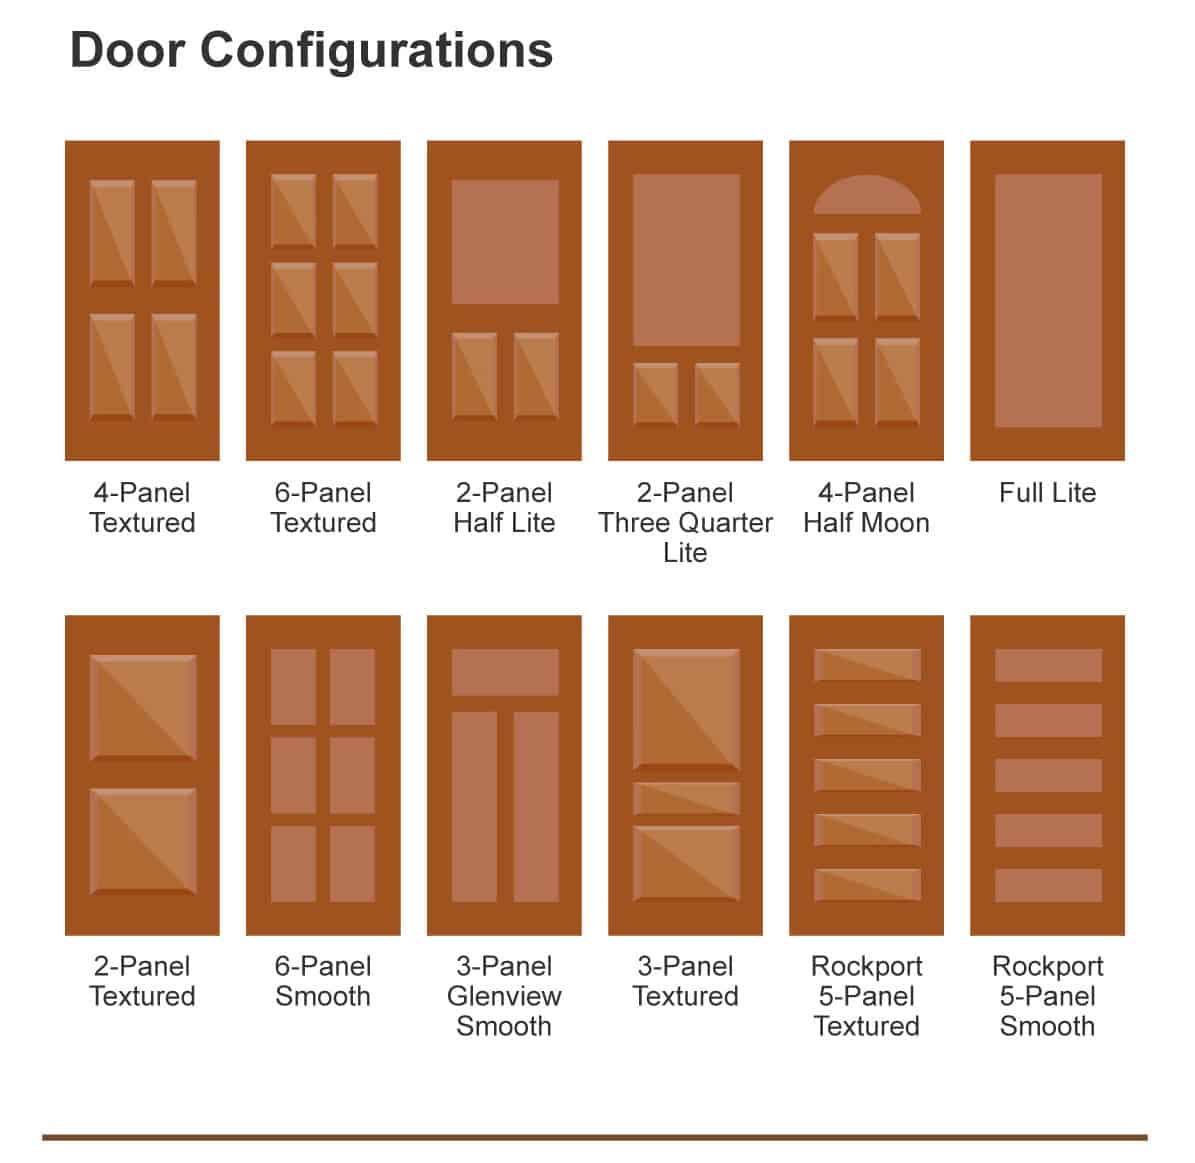 Decorating door types pics : 58 Types of Front Door Designs for Houses (Photos)